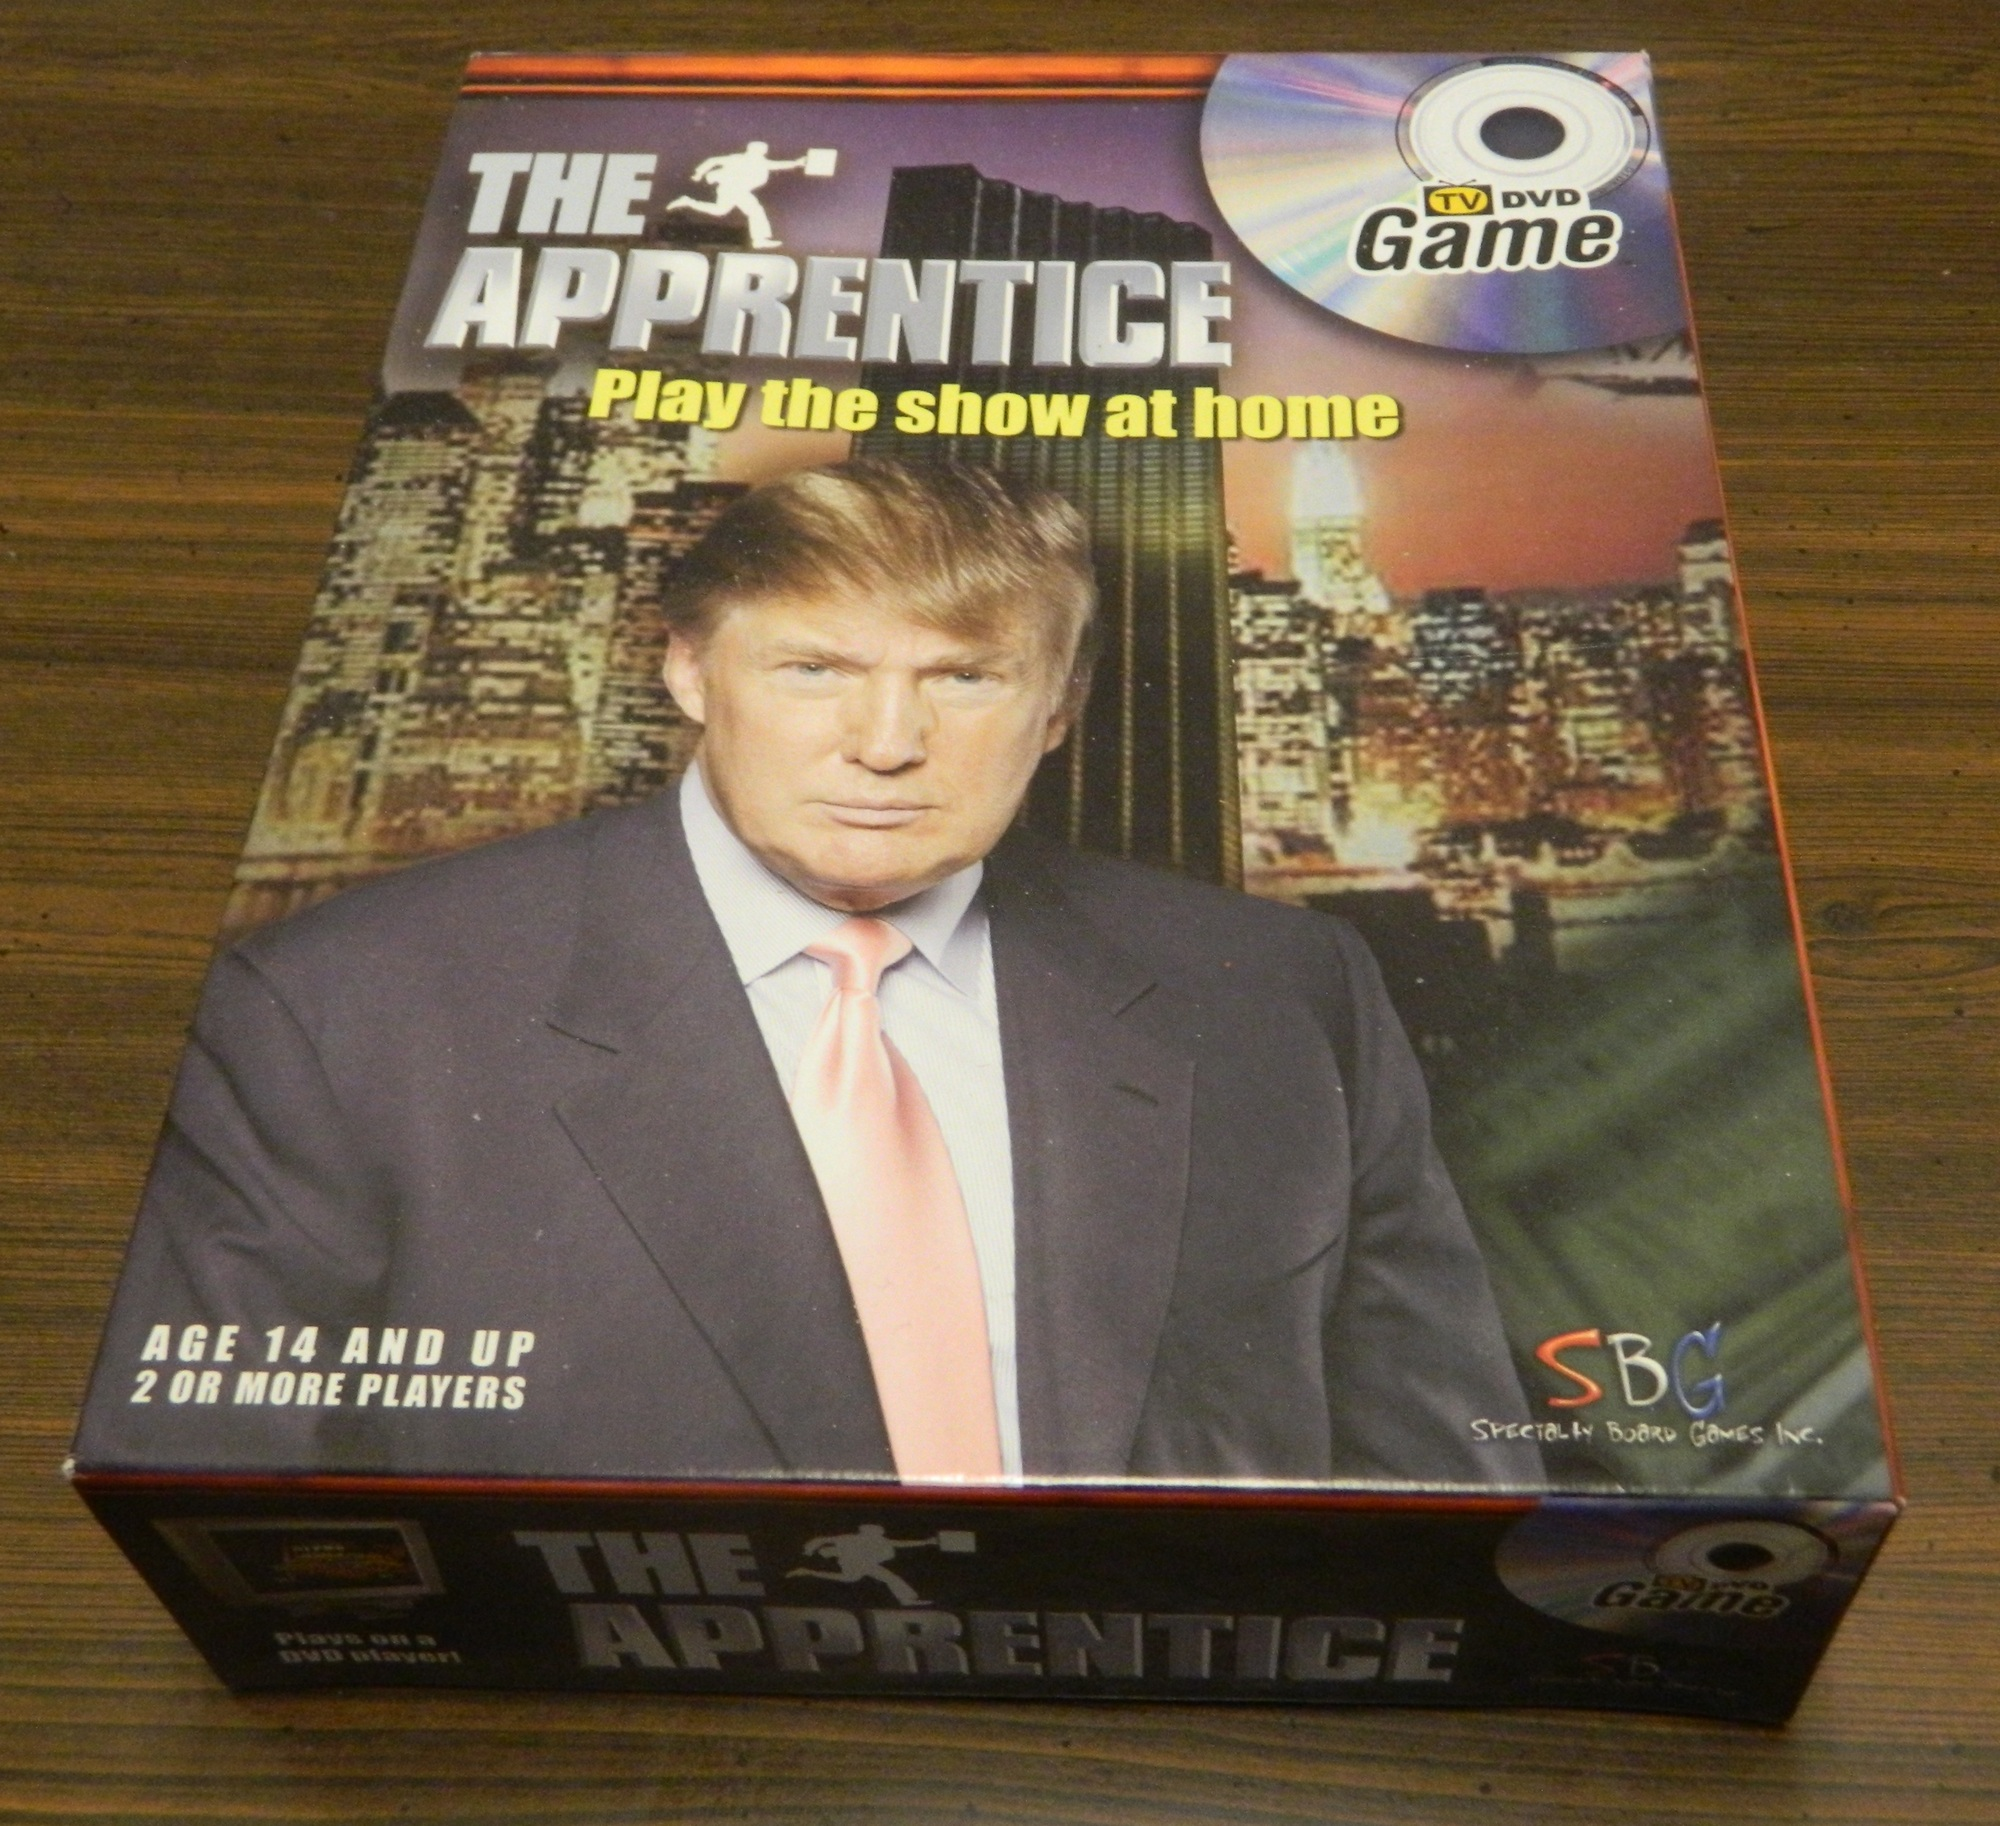 Box for The Apprentice